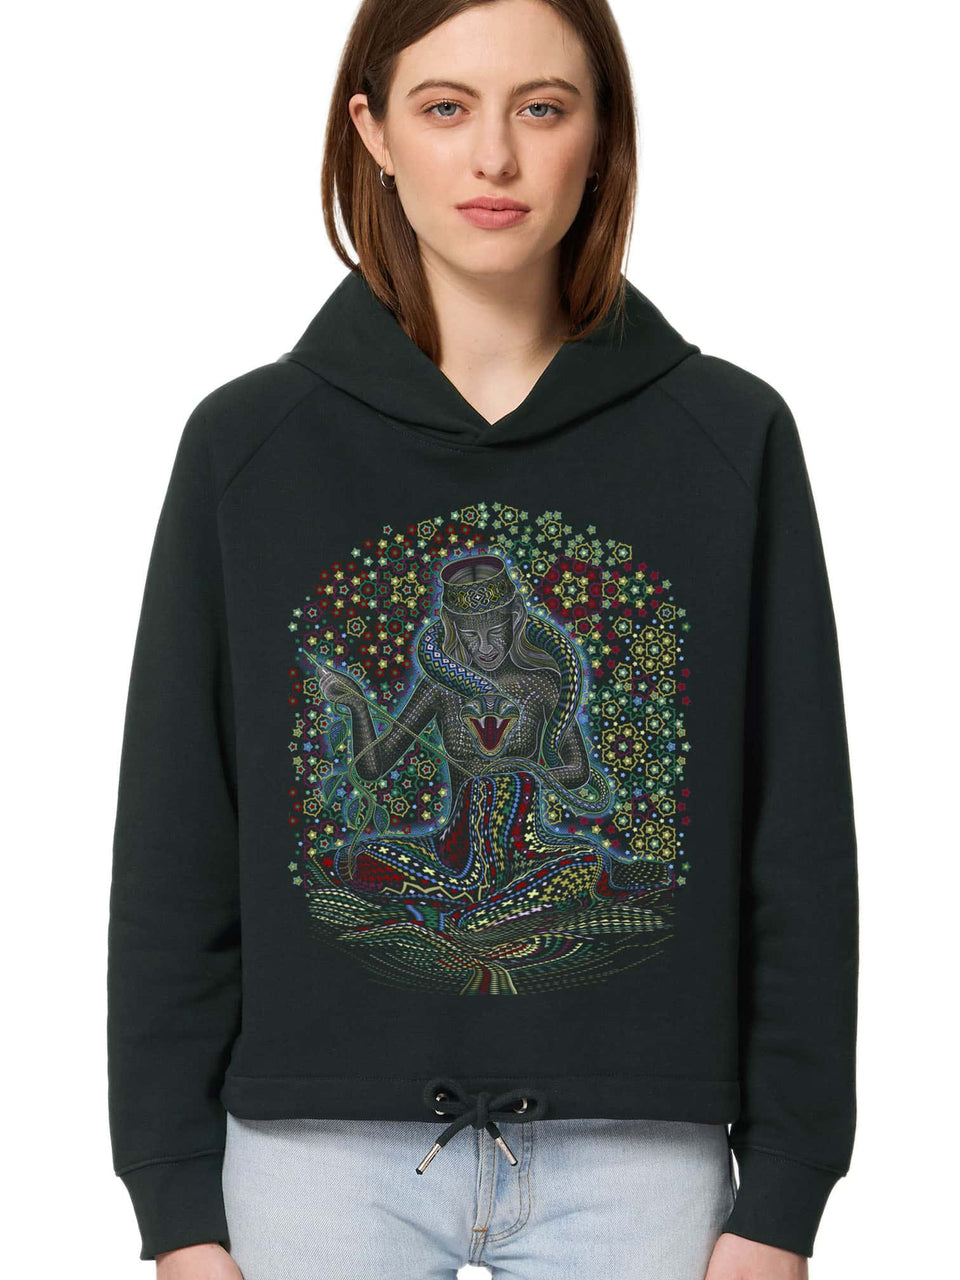 Song Weaving Made To Order Women Cropped Hoodie Sweatshirt - Black